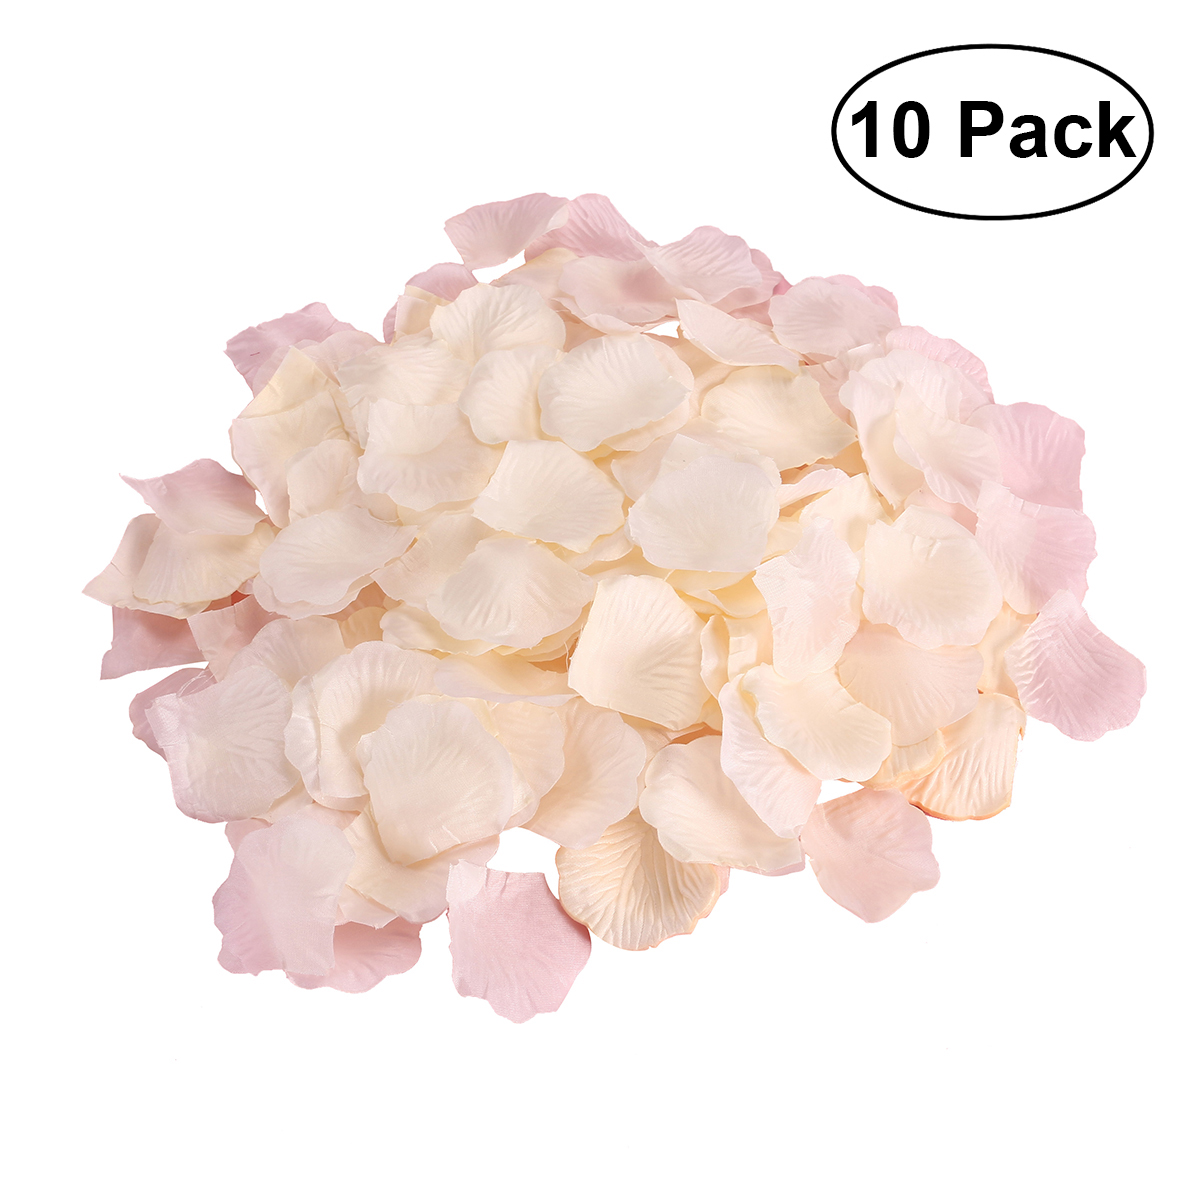 10 Pack Fake Rose Petals Artificial Wedding Flower Decoration